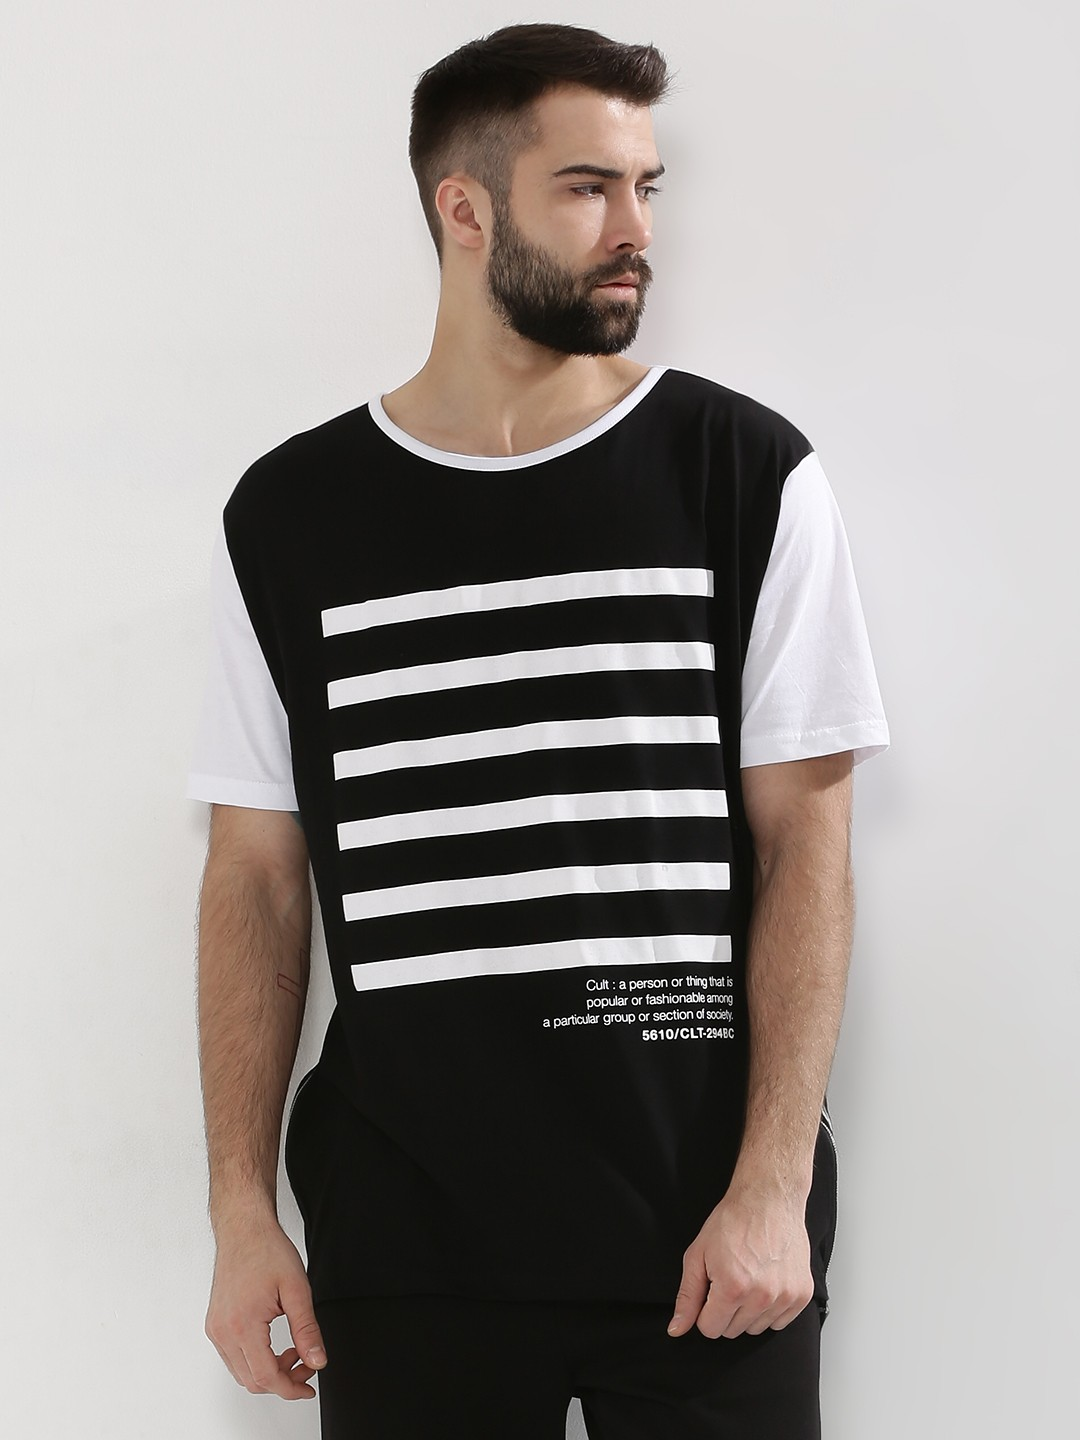 Black t shirt with white stripes - Adamo London Cult Back Print Cut Sew T Shirt With Contrast Stripes